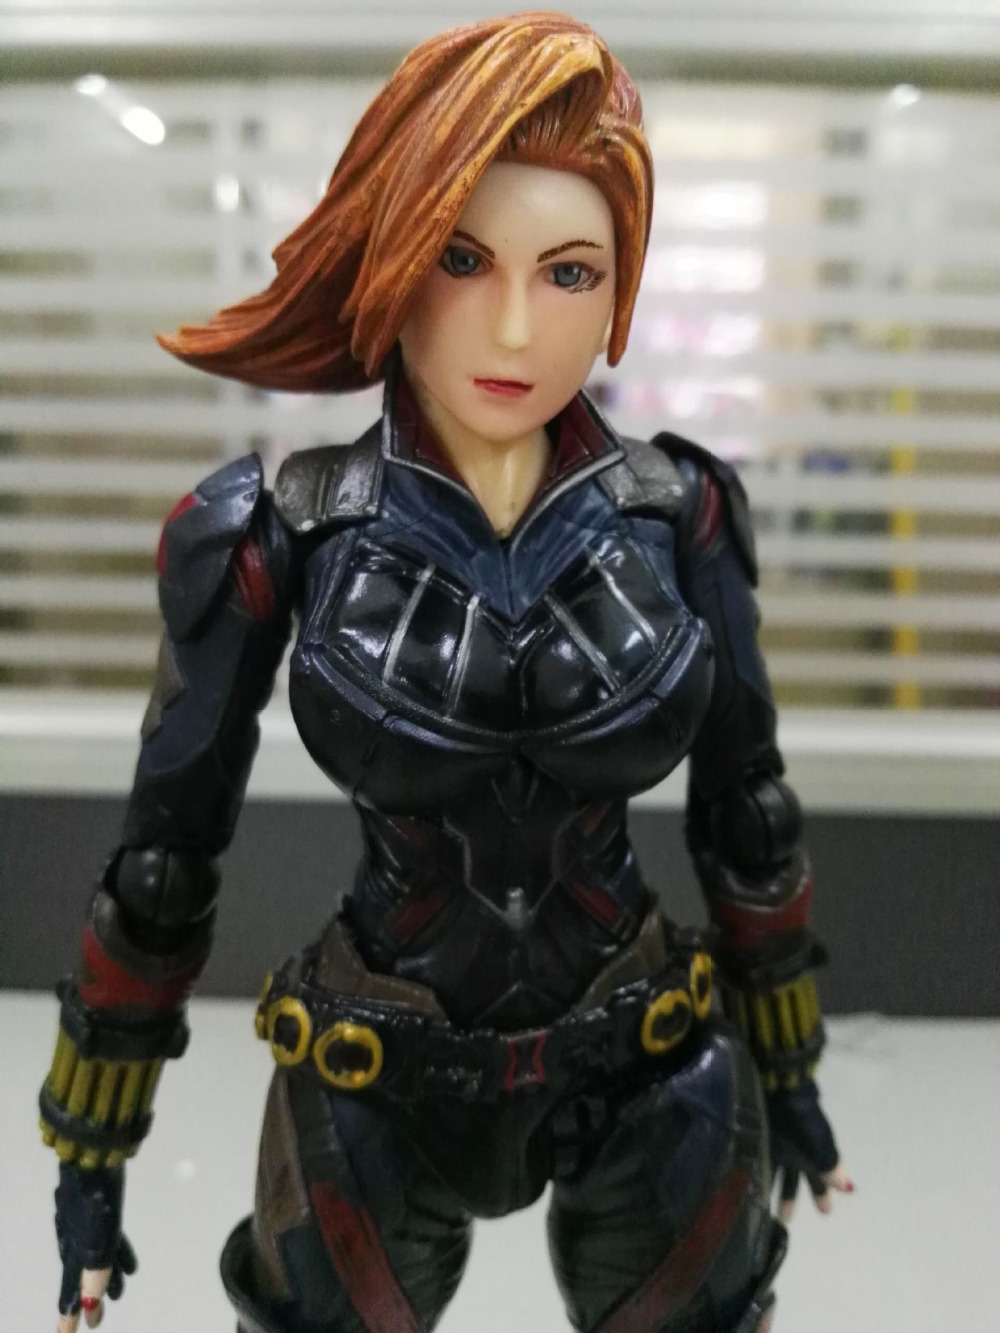 PlayArts KAI Age of Ultron Black Widow PA PVC Action Figure Collectible Model Toy with box playarts kai star wars stormtrooper pvc action figure collectible model toy